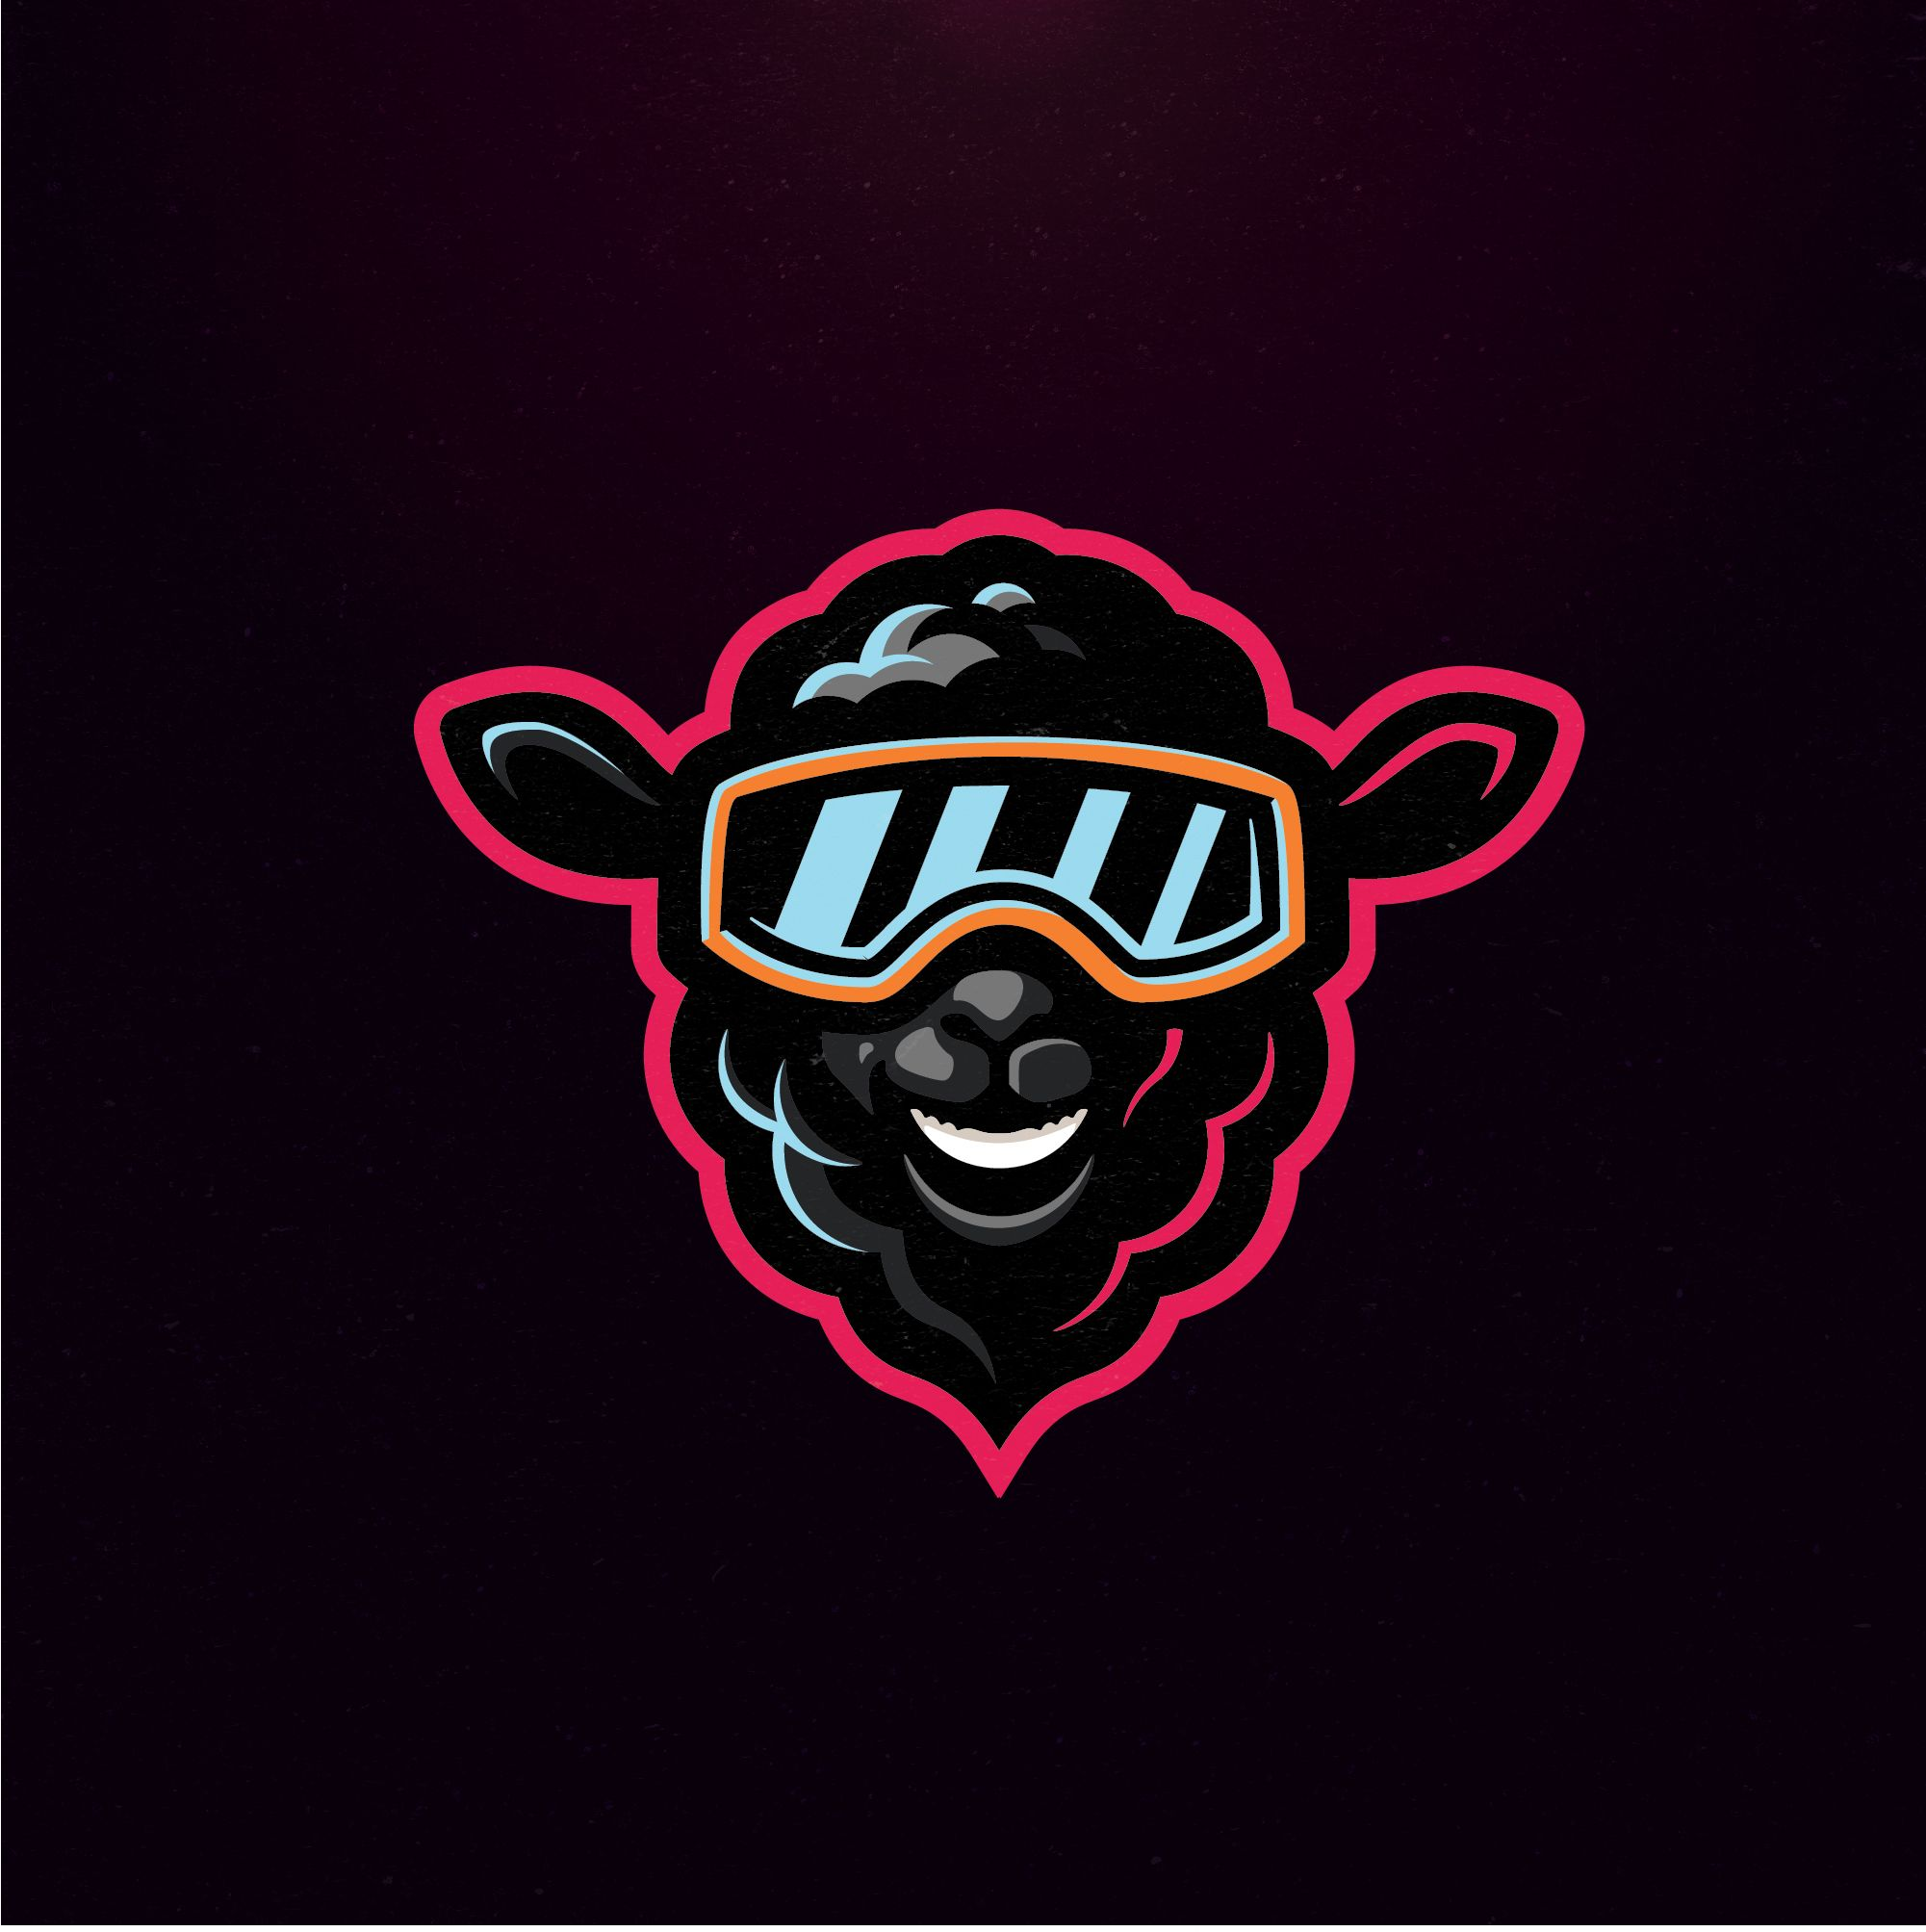 Snowboarder black sheep. Logo avaiable! Can also be used